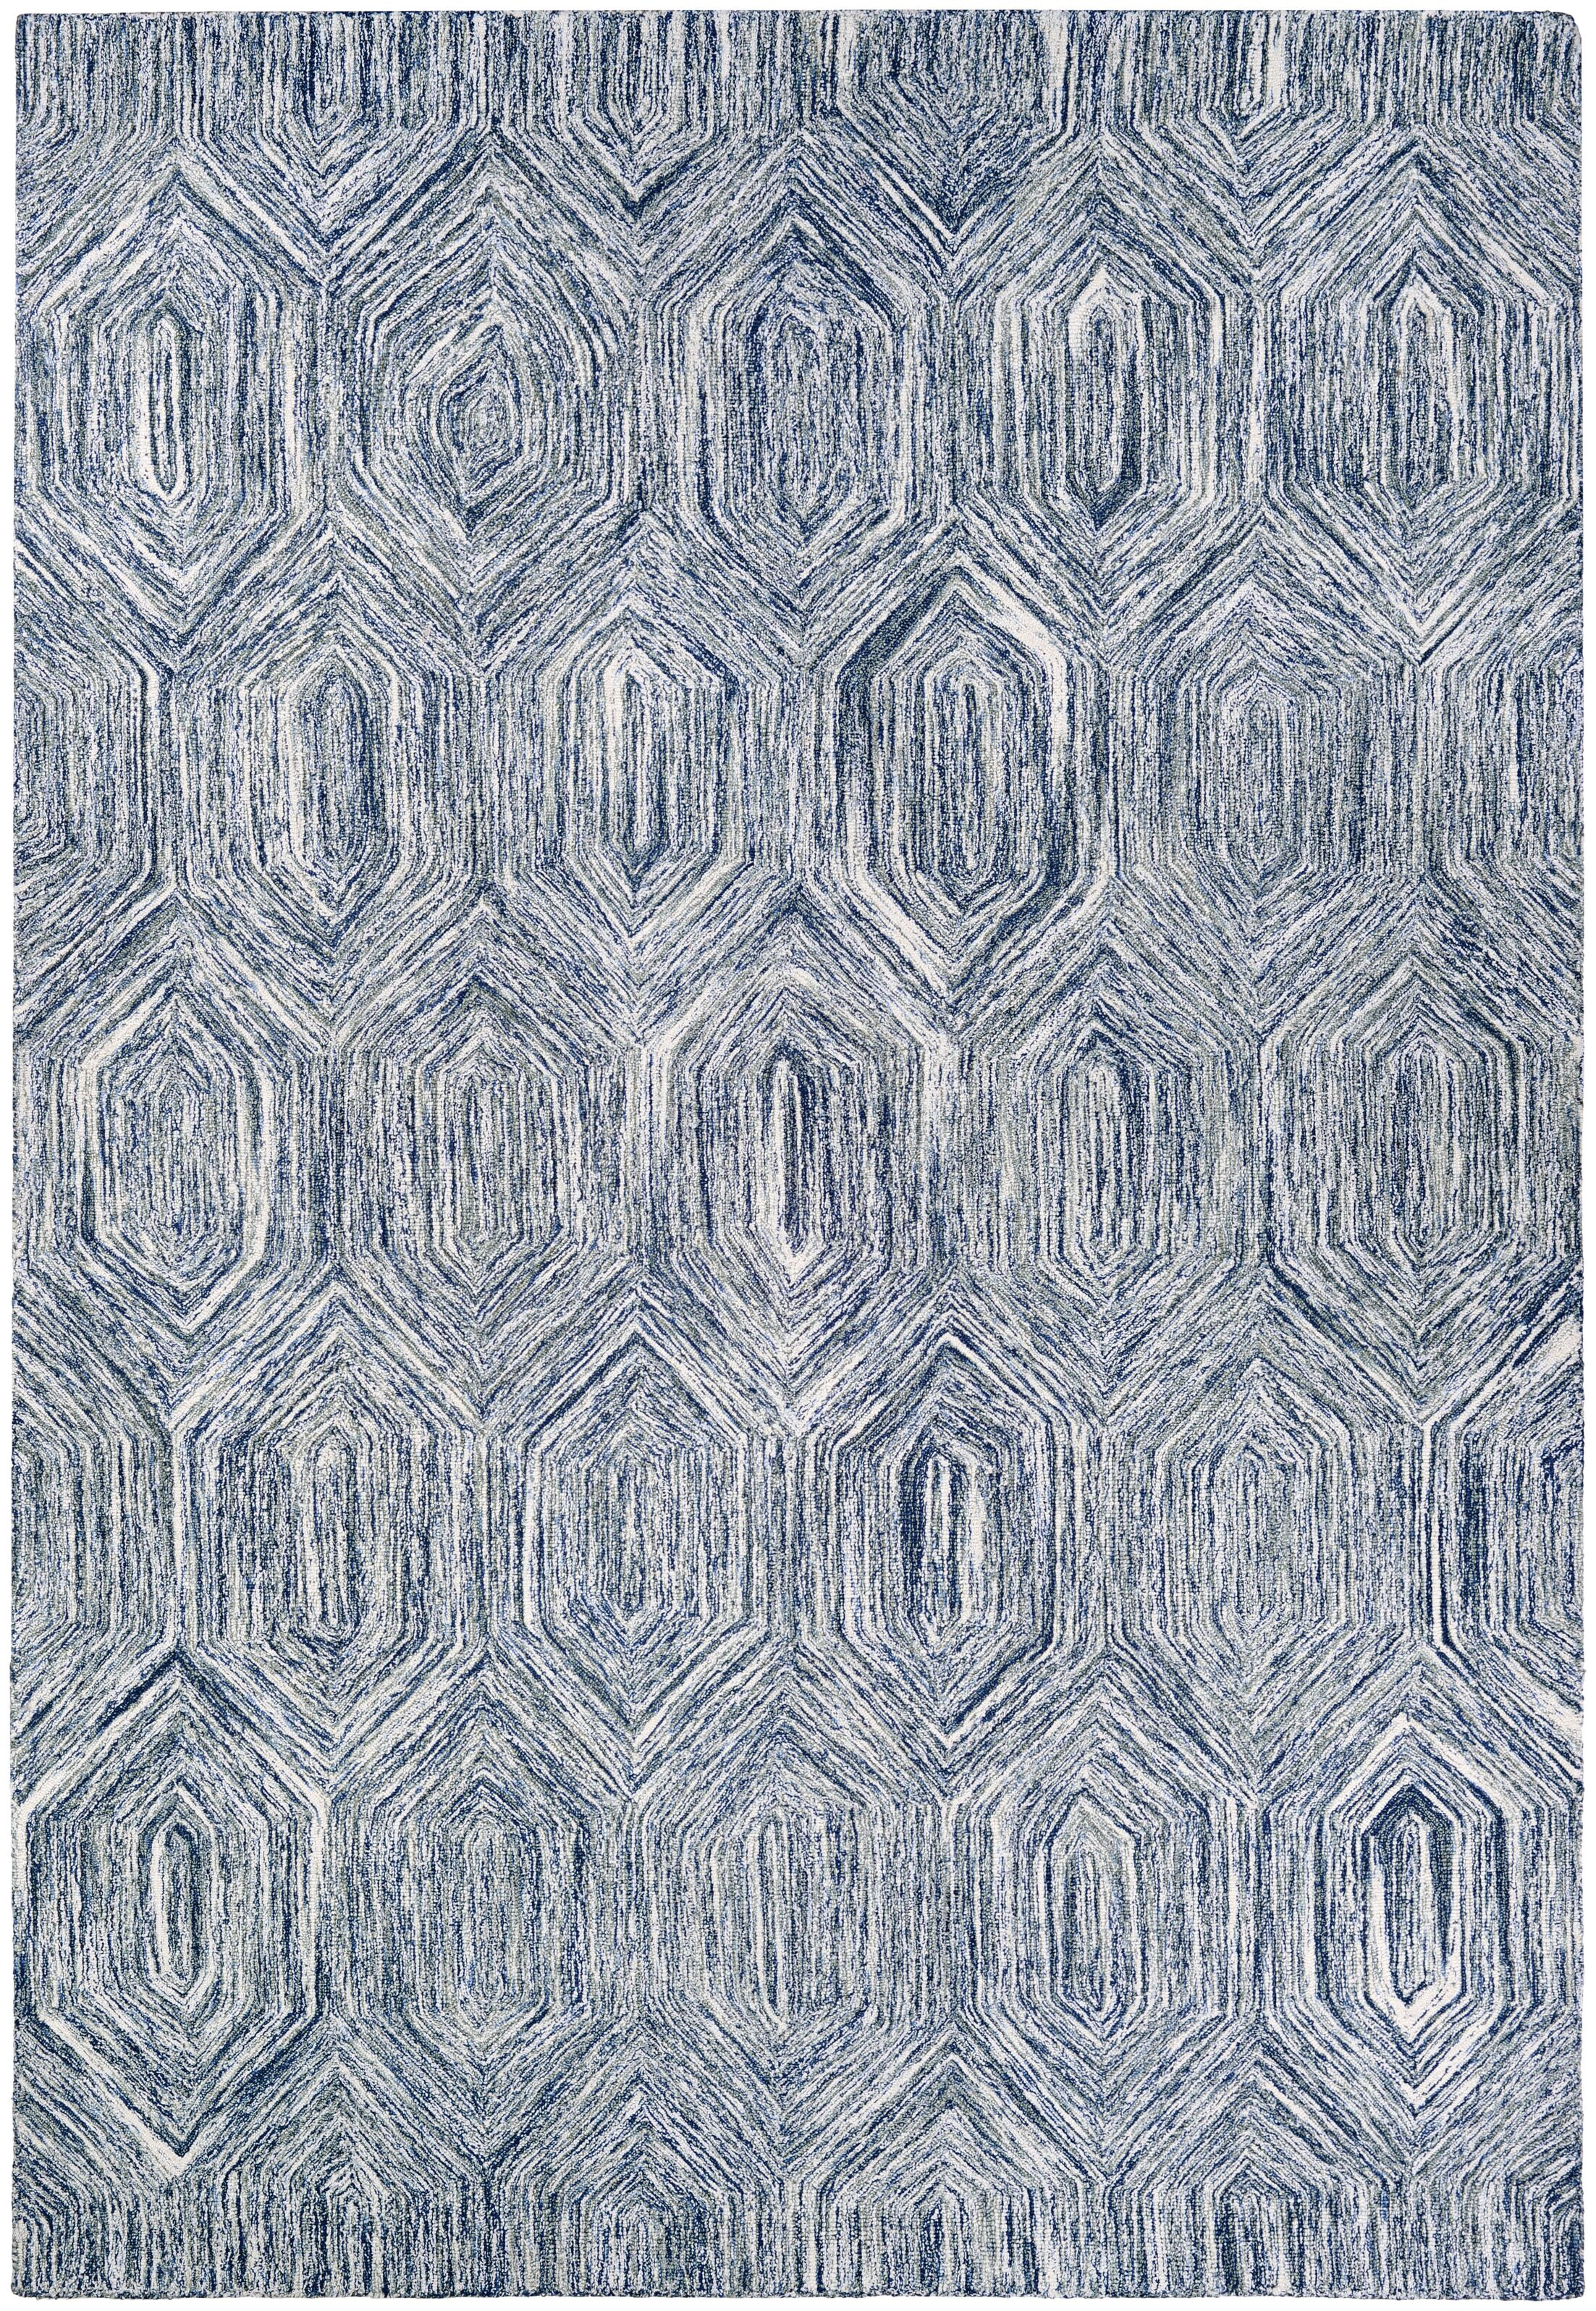 Crabill Hand-Woven Blue/Gray Area Rug Rug Size: Rectangle 5' x 8'